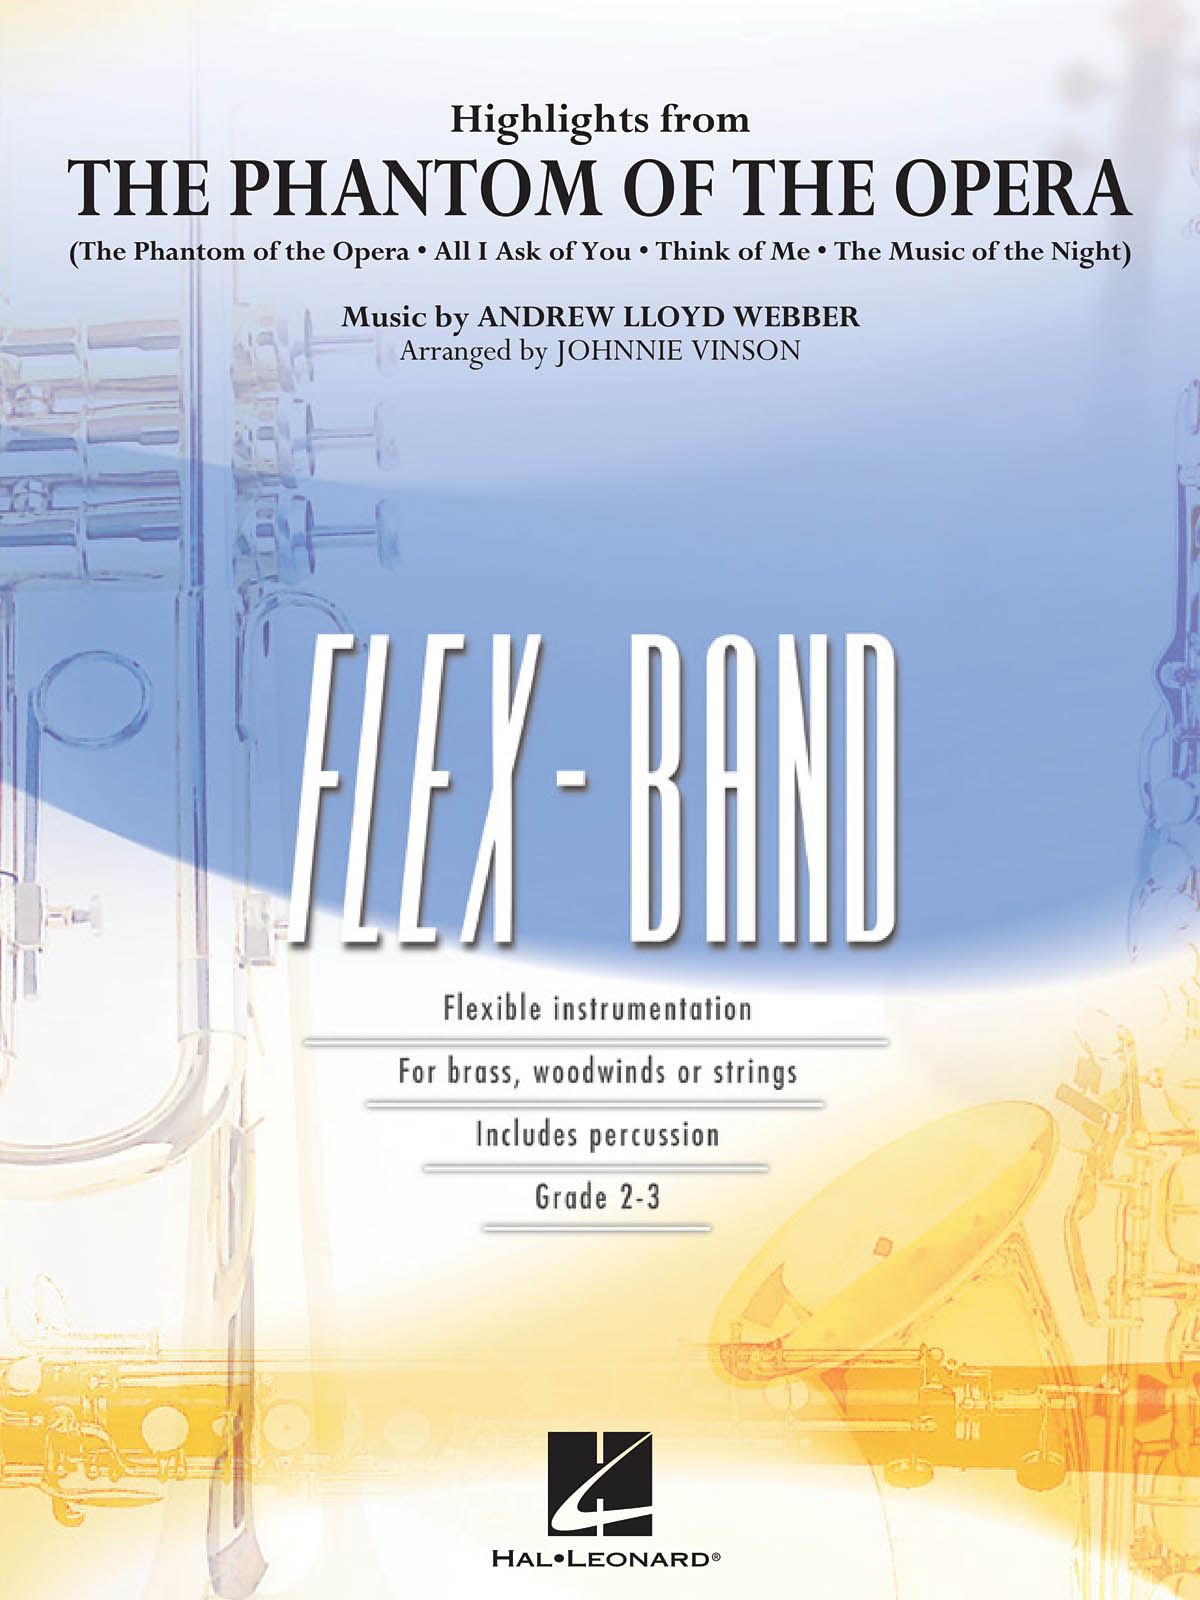 Andrew Lloyd Webber: Highlights from The Phantom of the Opera: Flexible Band: